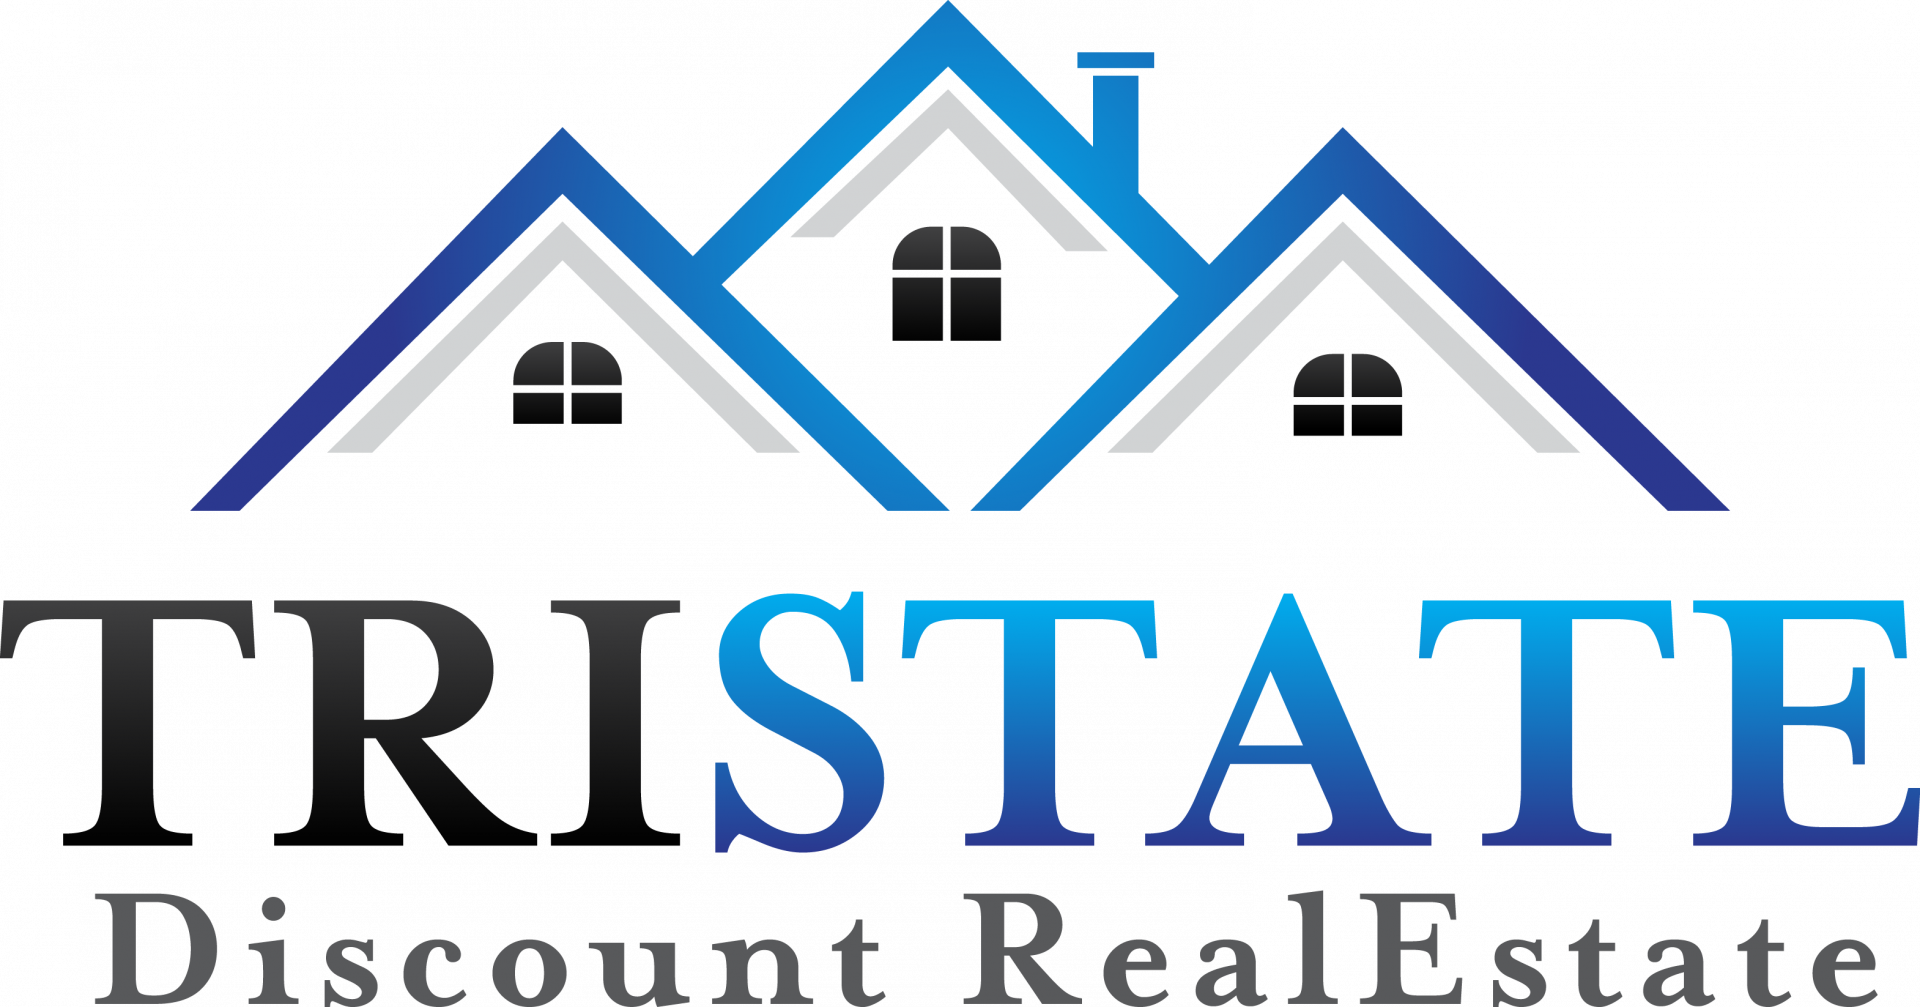 TRI-STATE DISCOUNT REAL ESTATE logo